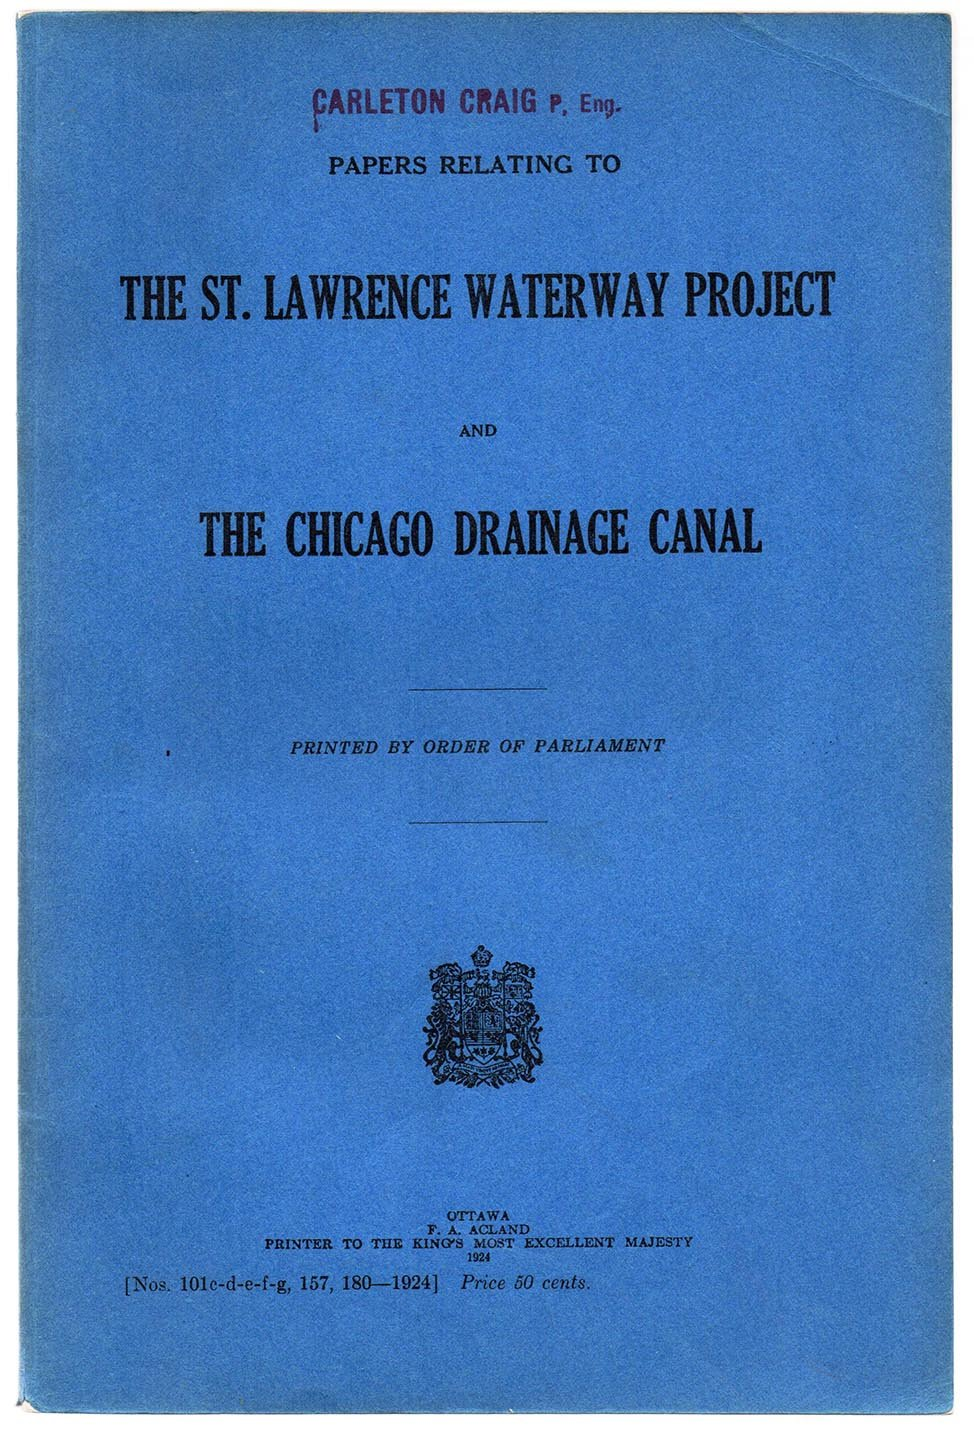 Papers Relating to The St. Lawrence Waterway Project and The Chicago Drainage Canal